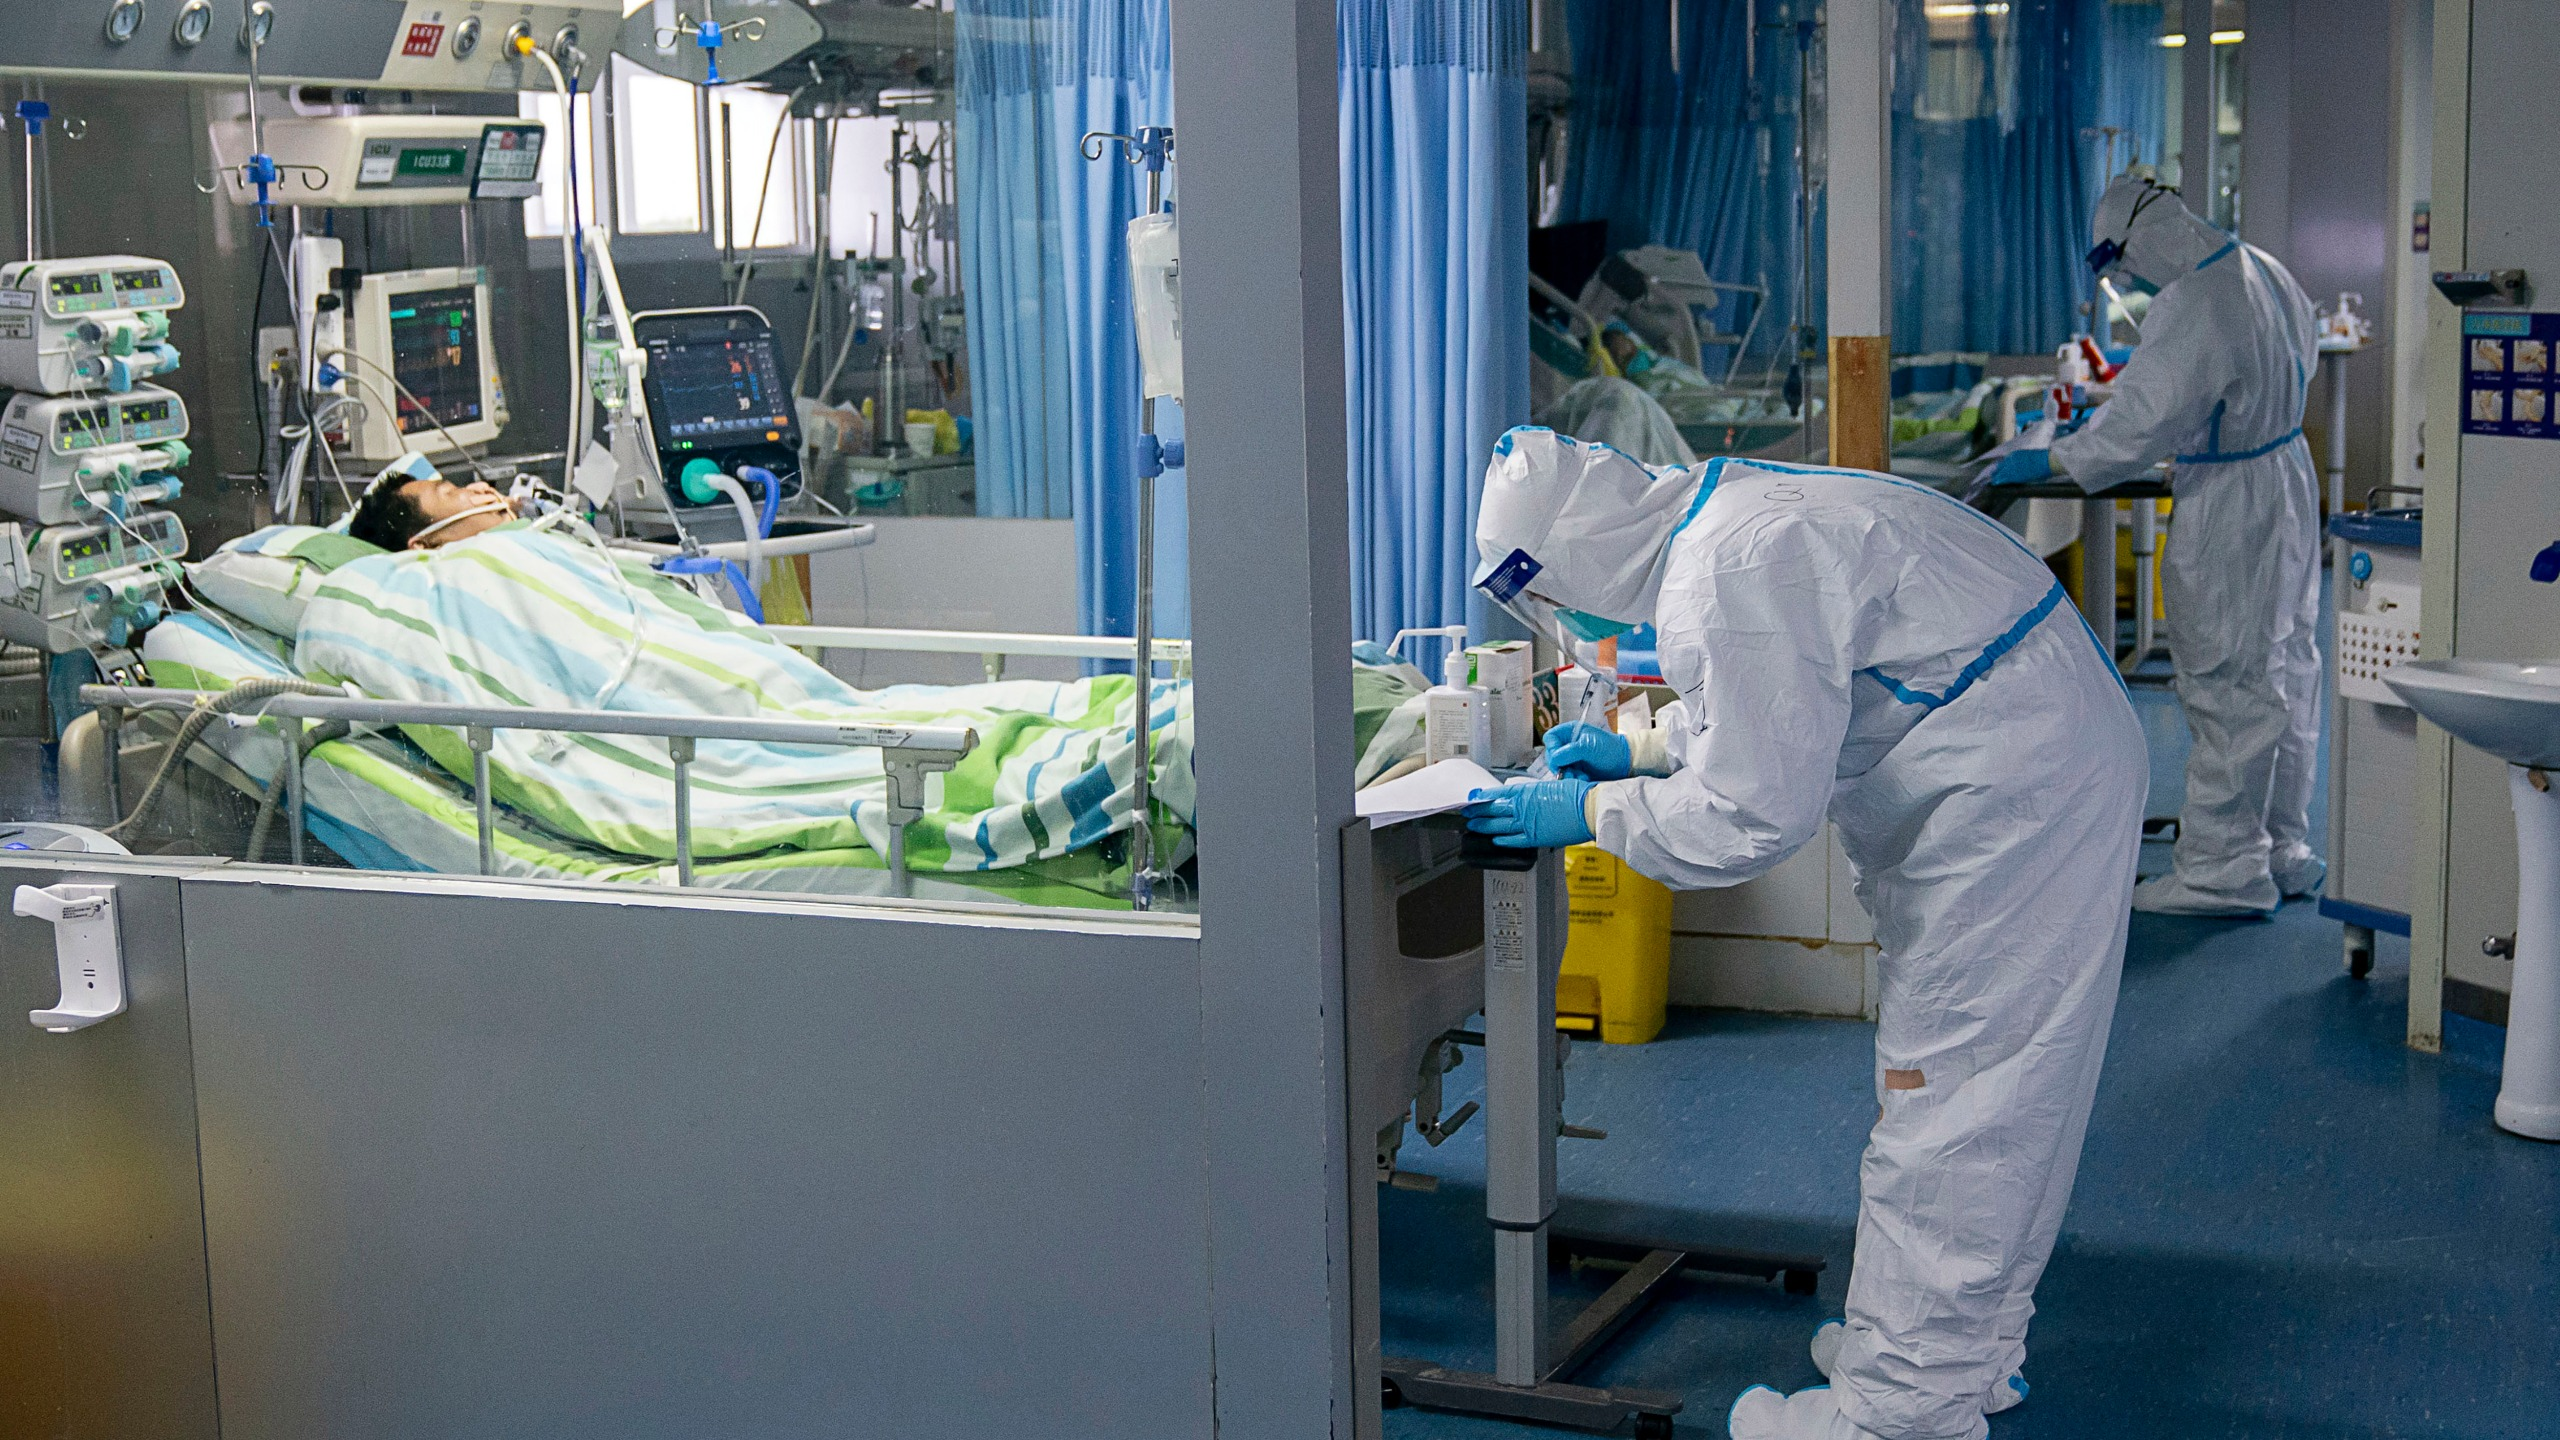 In this Friday, Jan. 24, 2020, photo released by China's Xinhua News Agency, a medical worker attends to a patient in the intensive care unit at Zhongnan Hospital of Wuhan University in Wuhan in central China's Hubei Province. China expanded its lockdown against the deadly new virus to an unprecedented 36 million people and rushed to build a prefabricated, 1,000-bed hospital for victims Friday as the outbreak cast a pall over Lunar New Year, the country's biggest, most festive holiday.